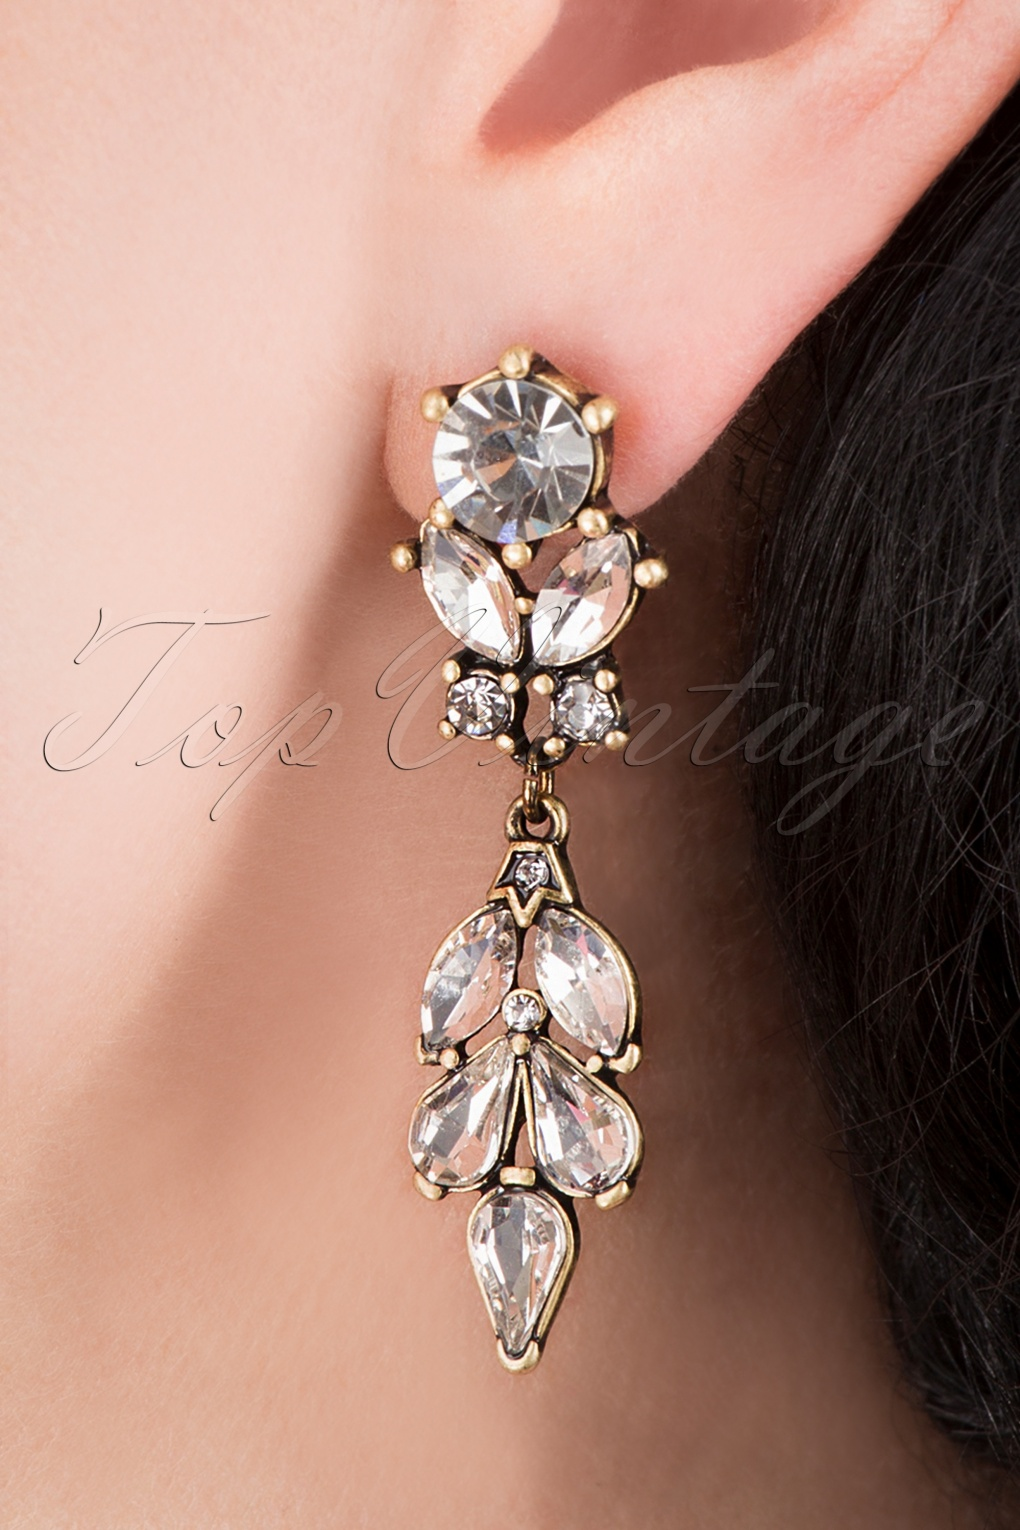 Vintage Style Jewelry, Retro Jewelry 20s Crystal Leaves Earrings in Gold £17.73 AT vintagedancer.com